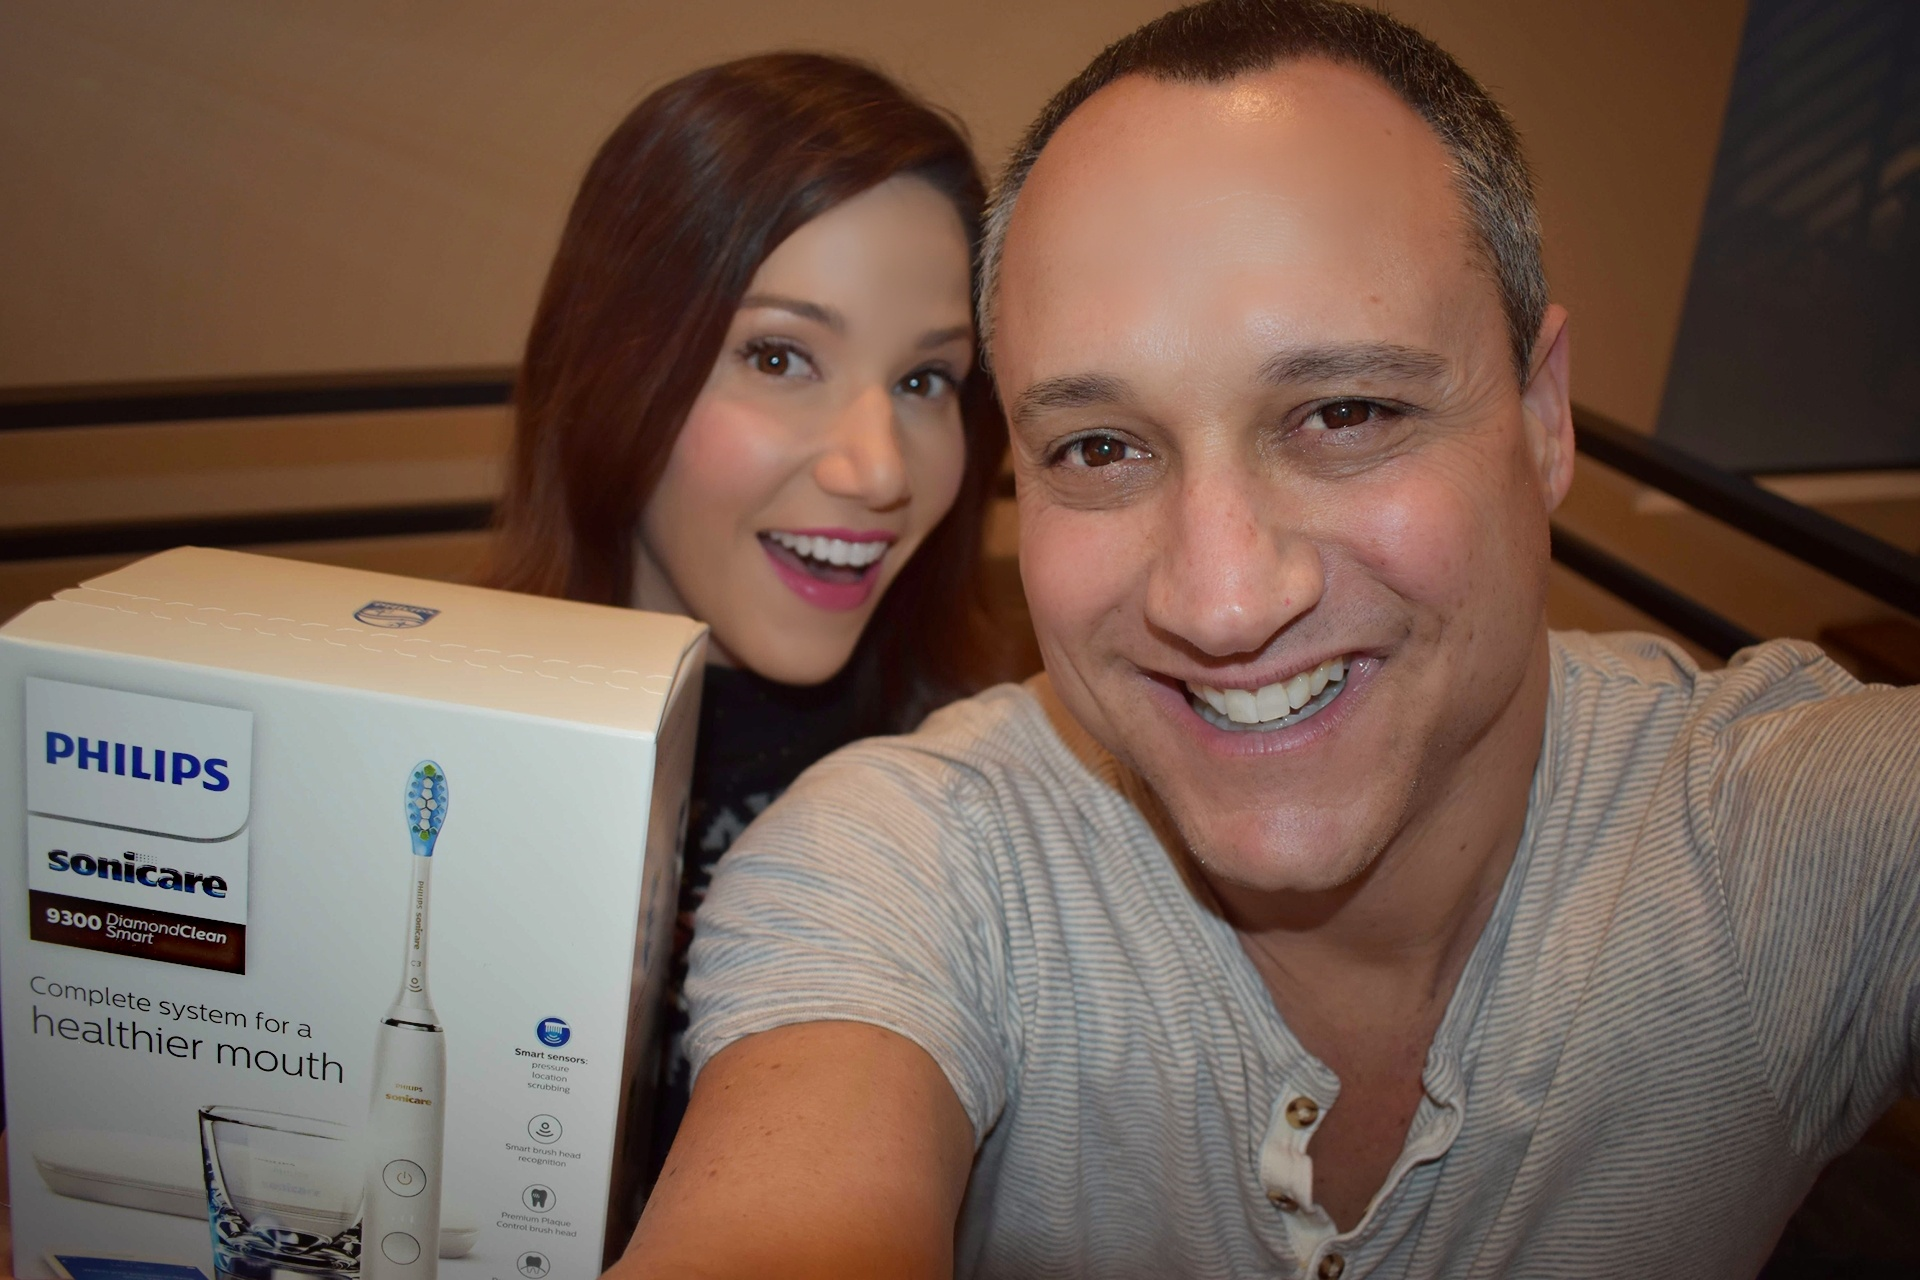 Why the Philips Sonicare DiamondClean Smart 9300 Rechargeable Toothbrush is the Perfect Christmas Gift